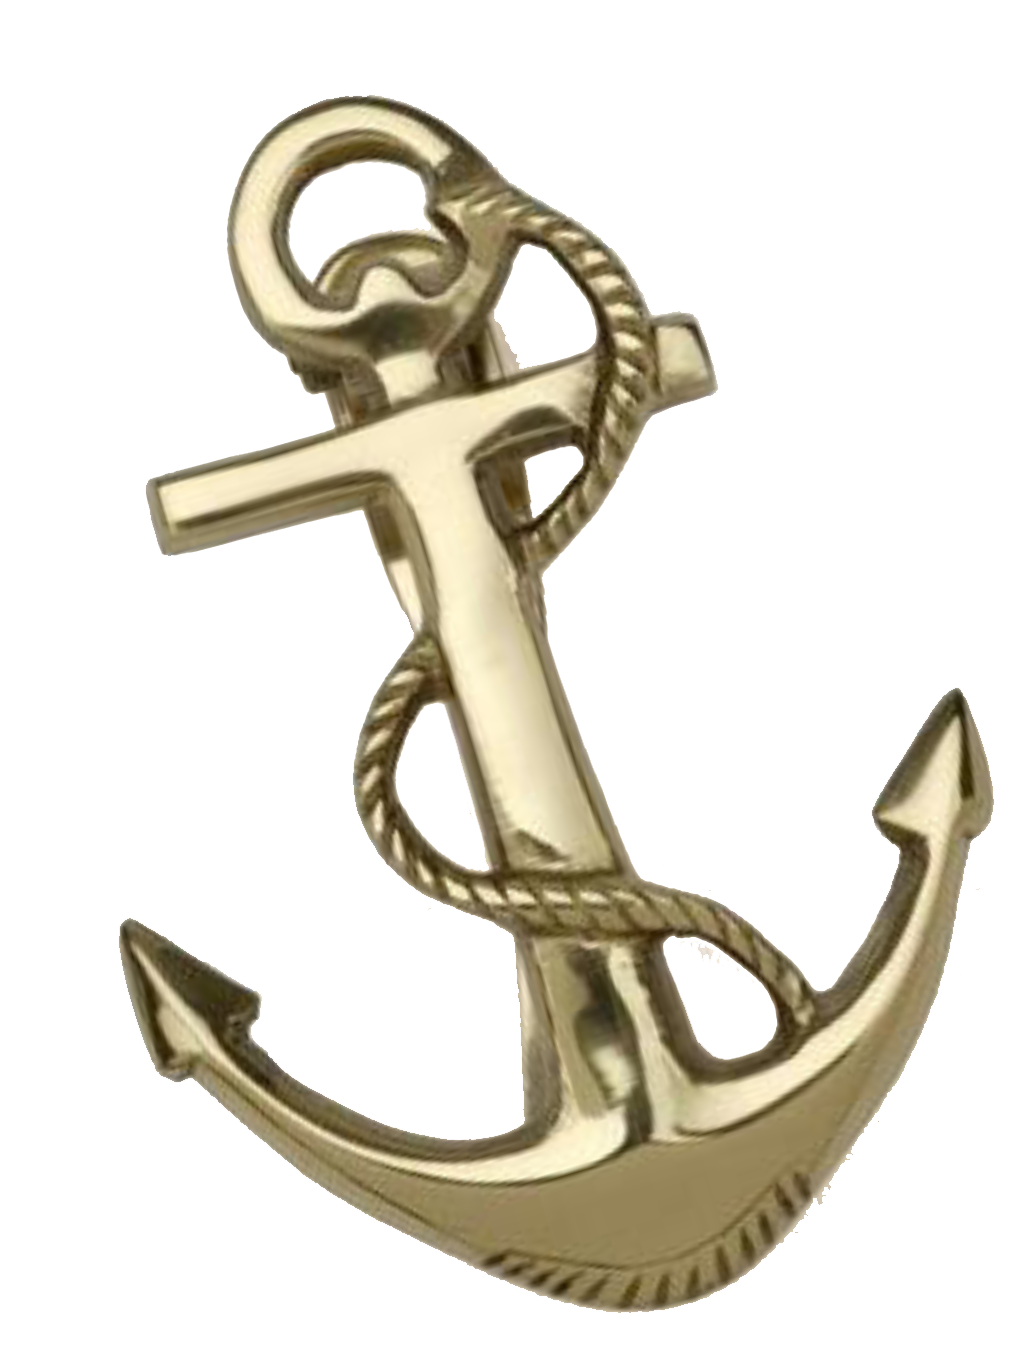 images for anchor png cliparts #21951